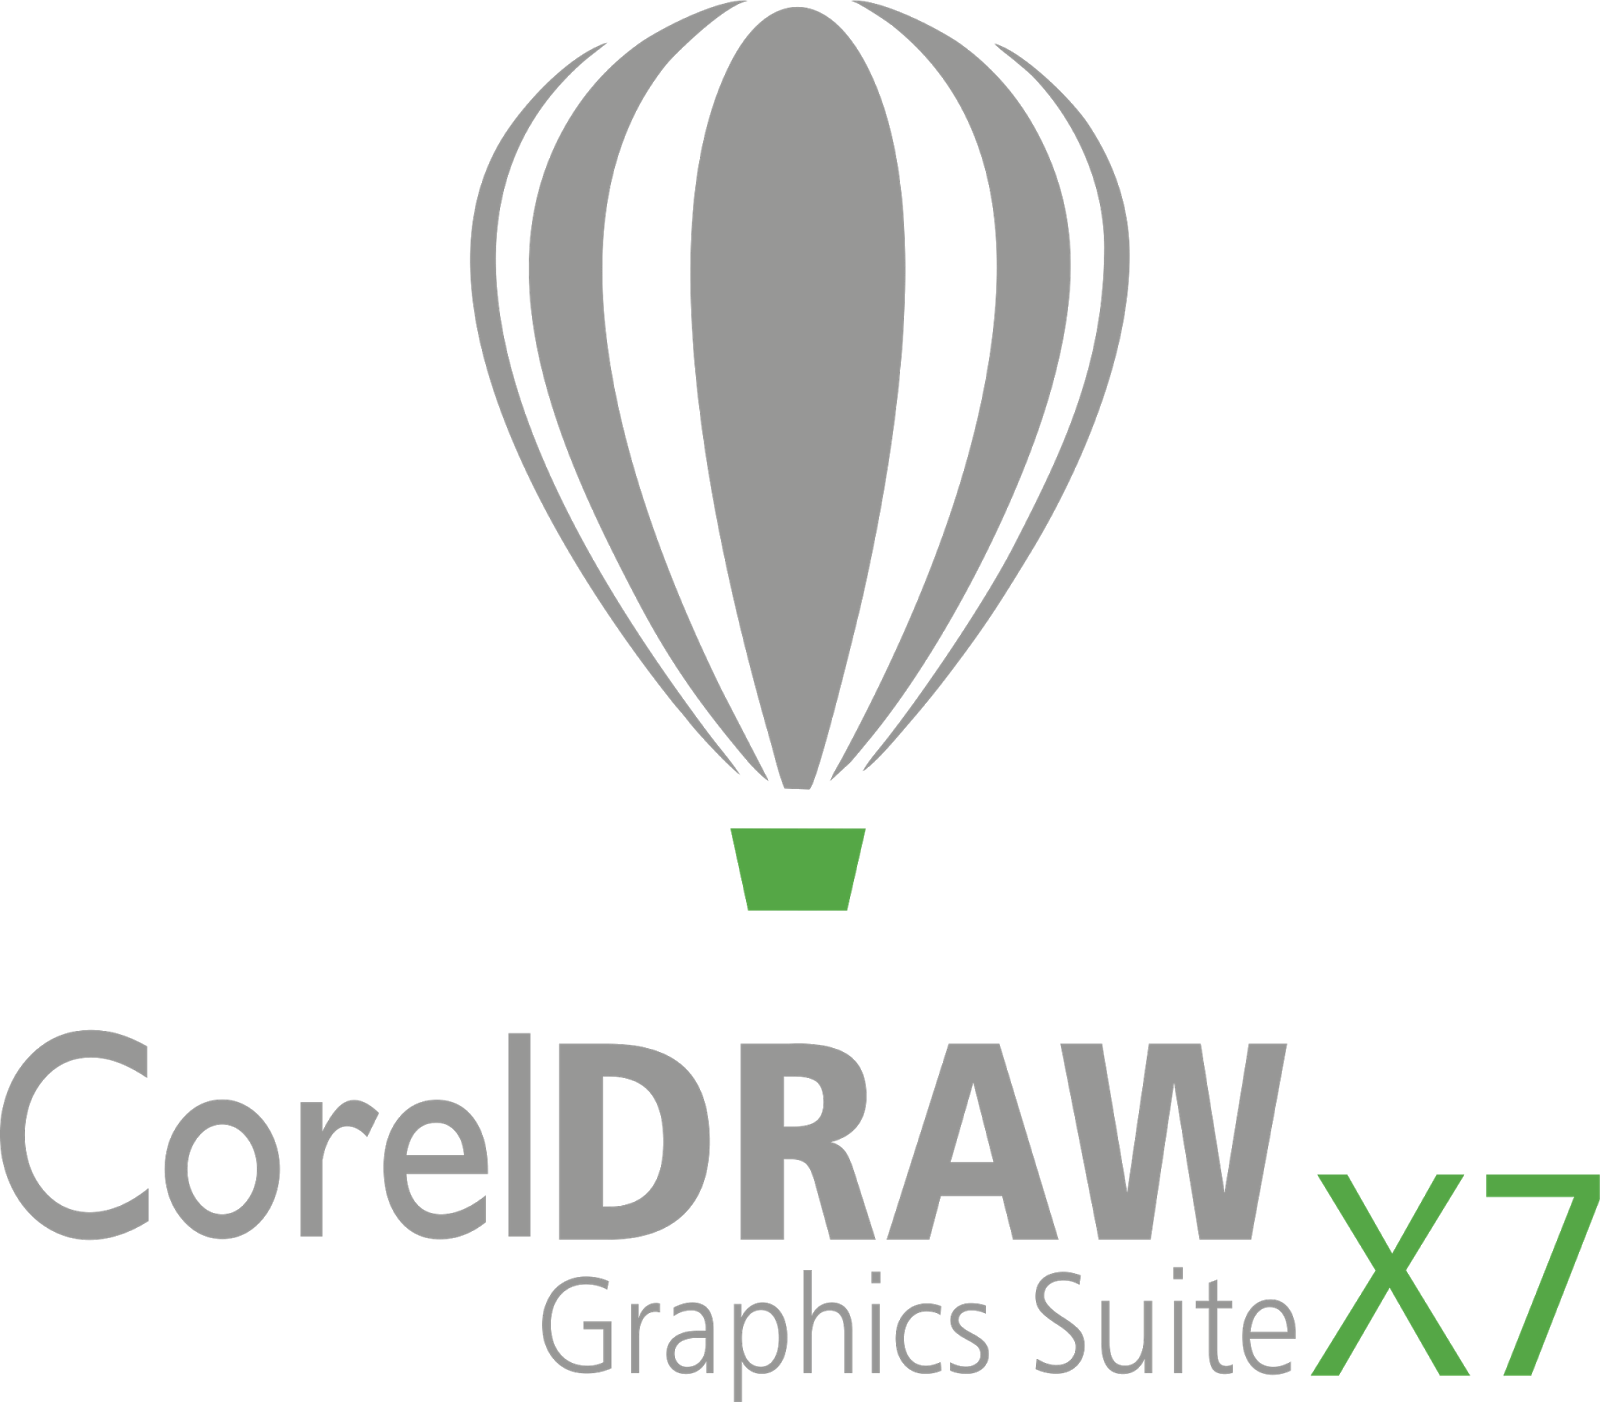 Corel draw version compatible with windows 10 - Through Coreldraw X8 Free Download We Can Design Banners Header And Sidebar Of Websites Menu And Layouts Also Corel Font Manager Is Awesome Software